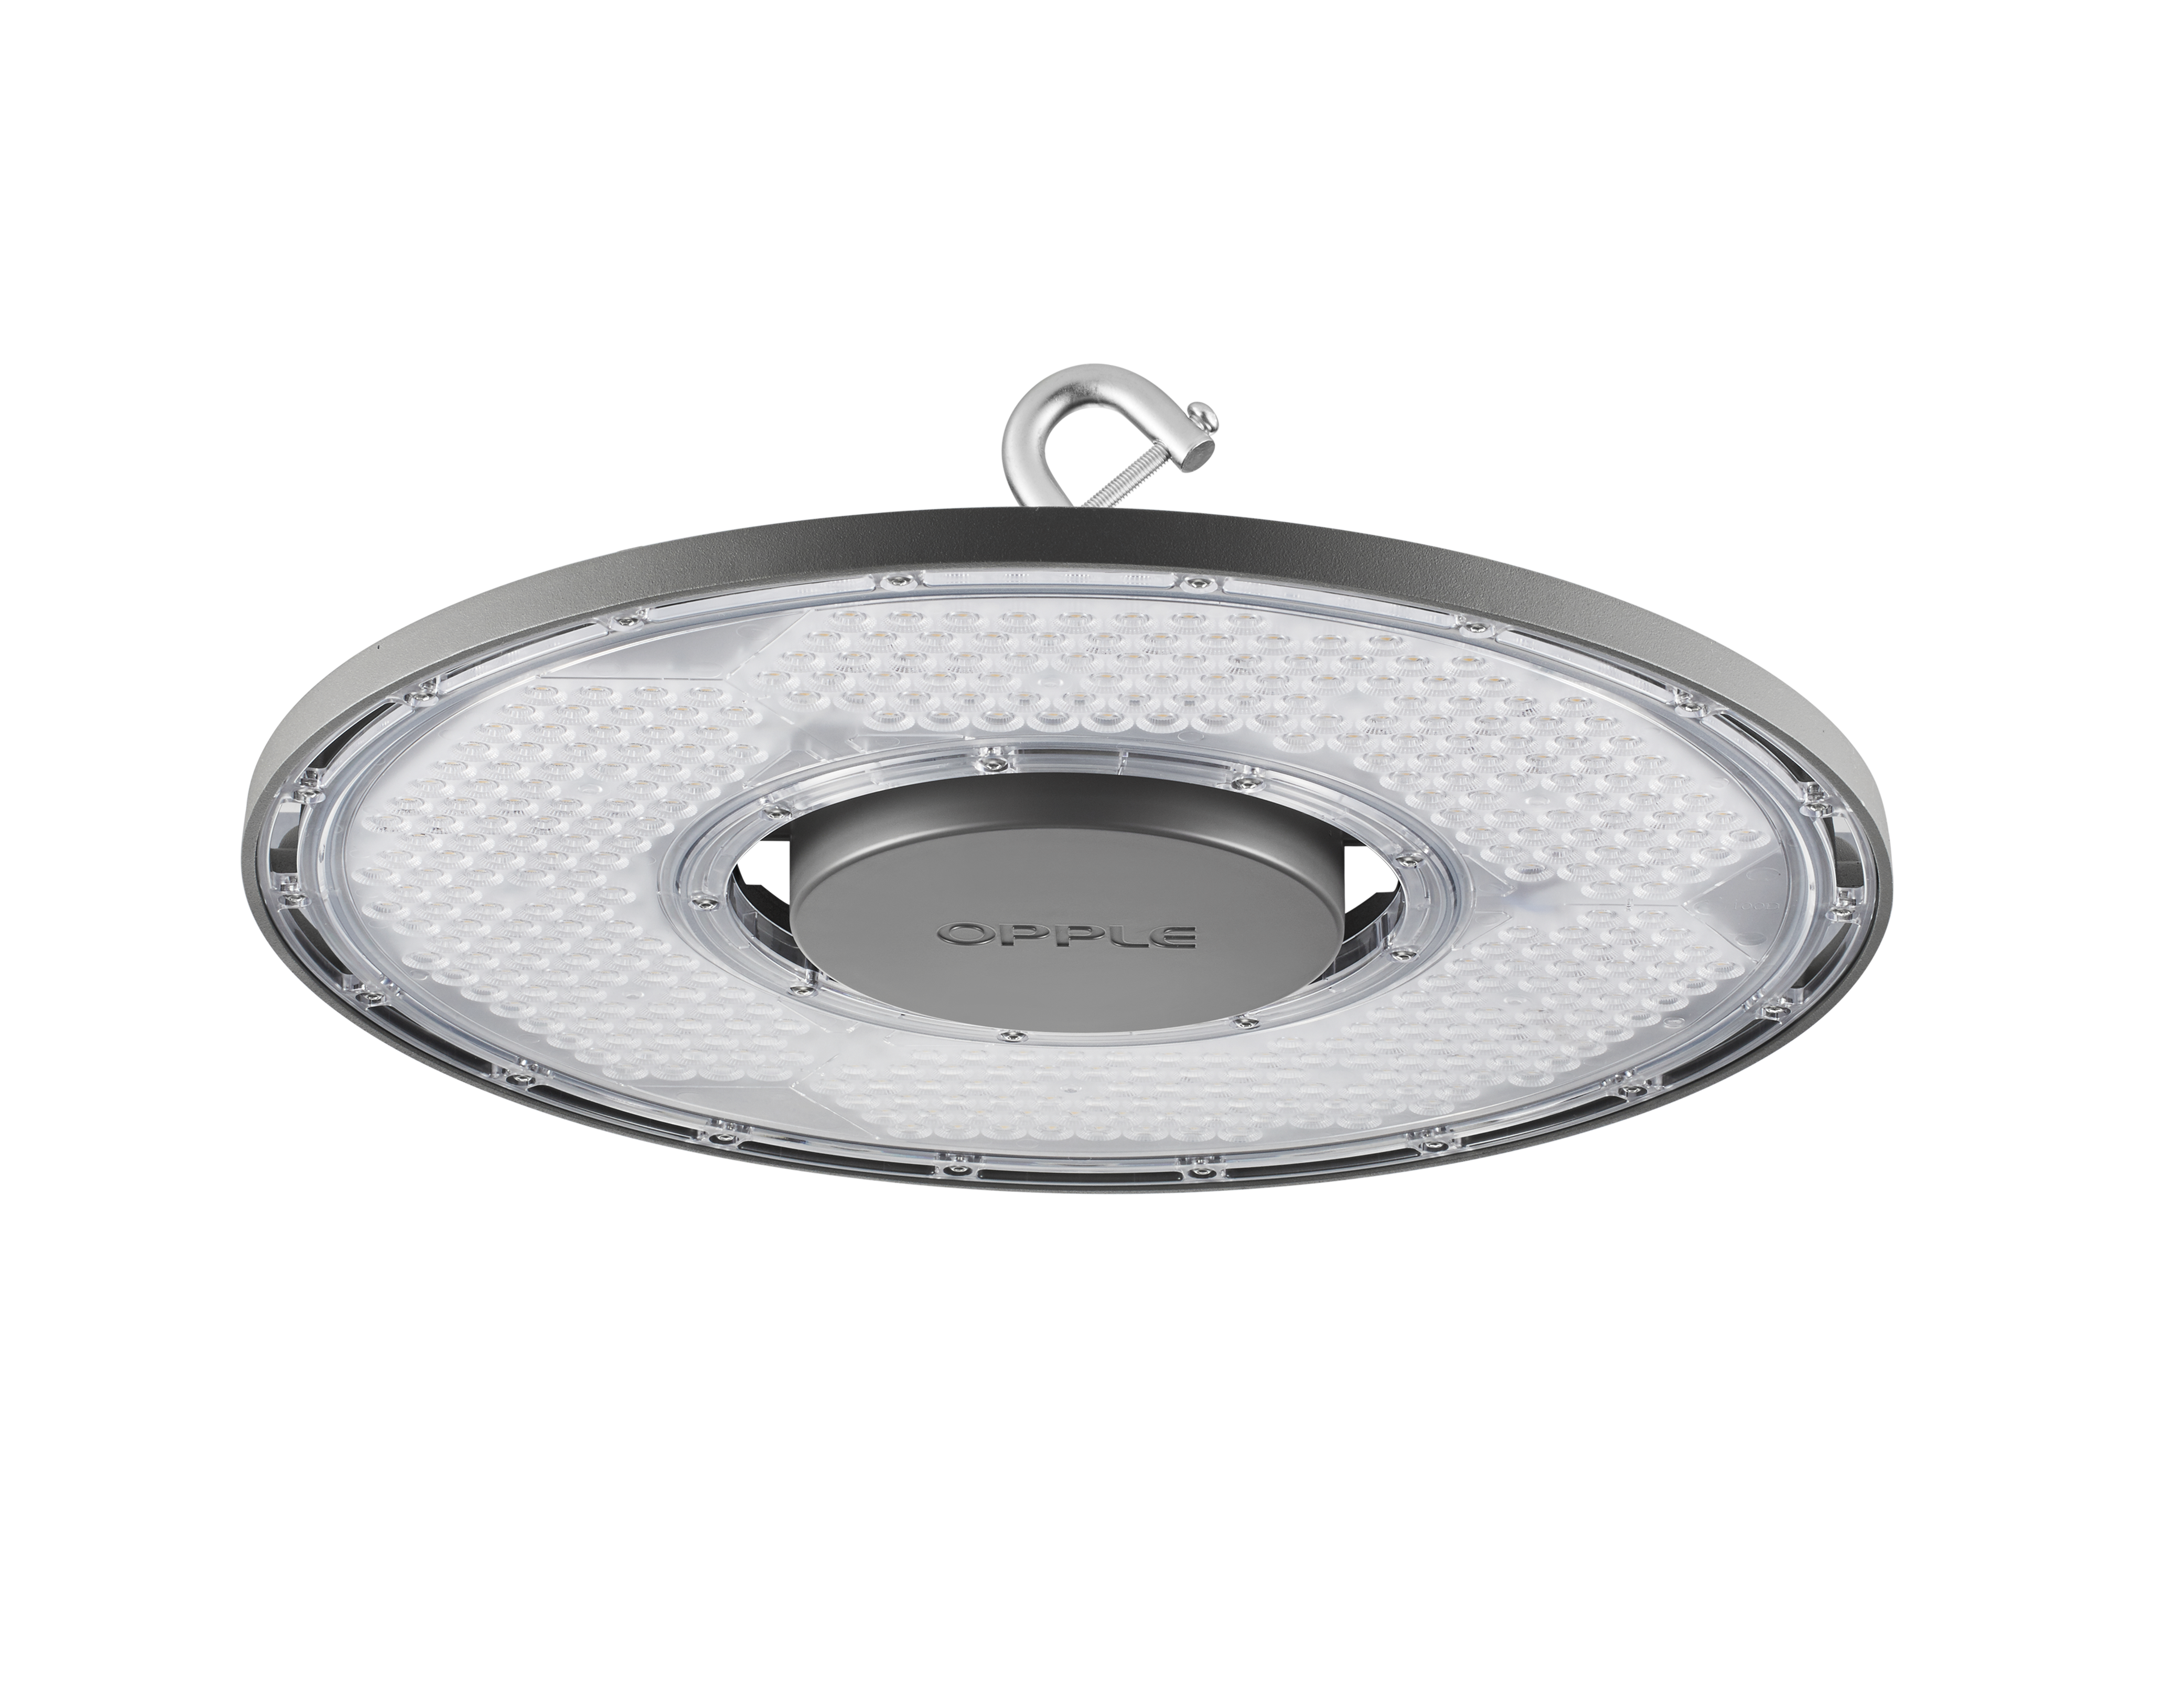 LEDHighbay P4 155W DALI 4000 100D | OPPLE Lighting